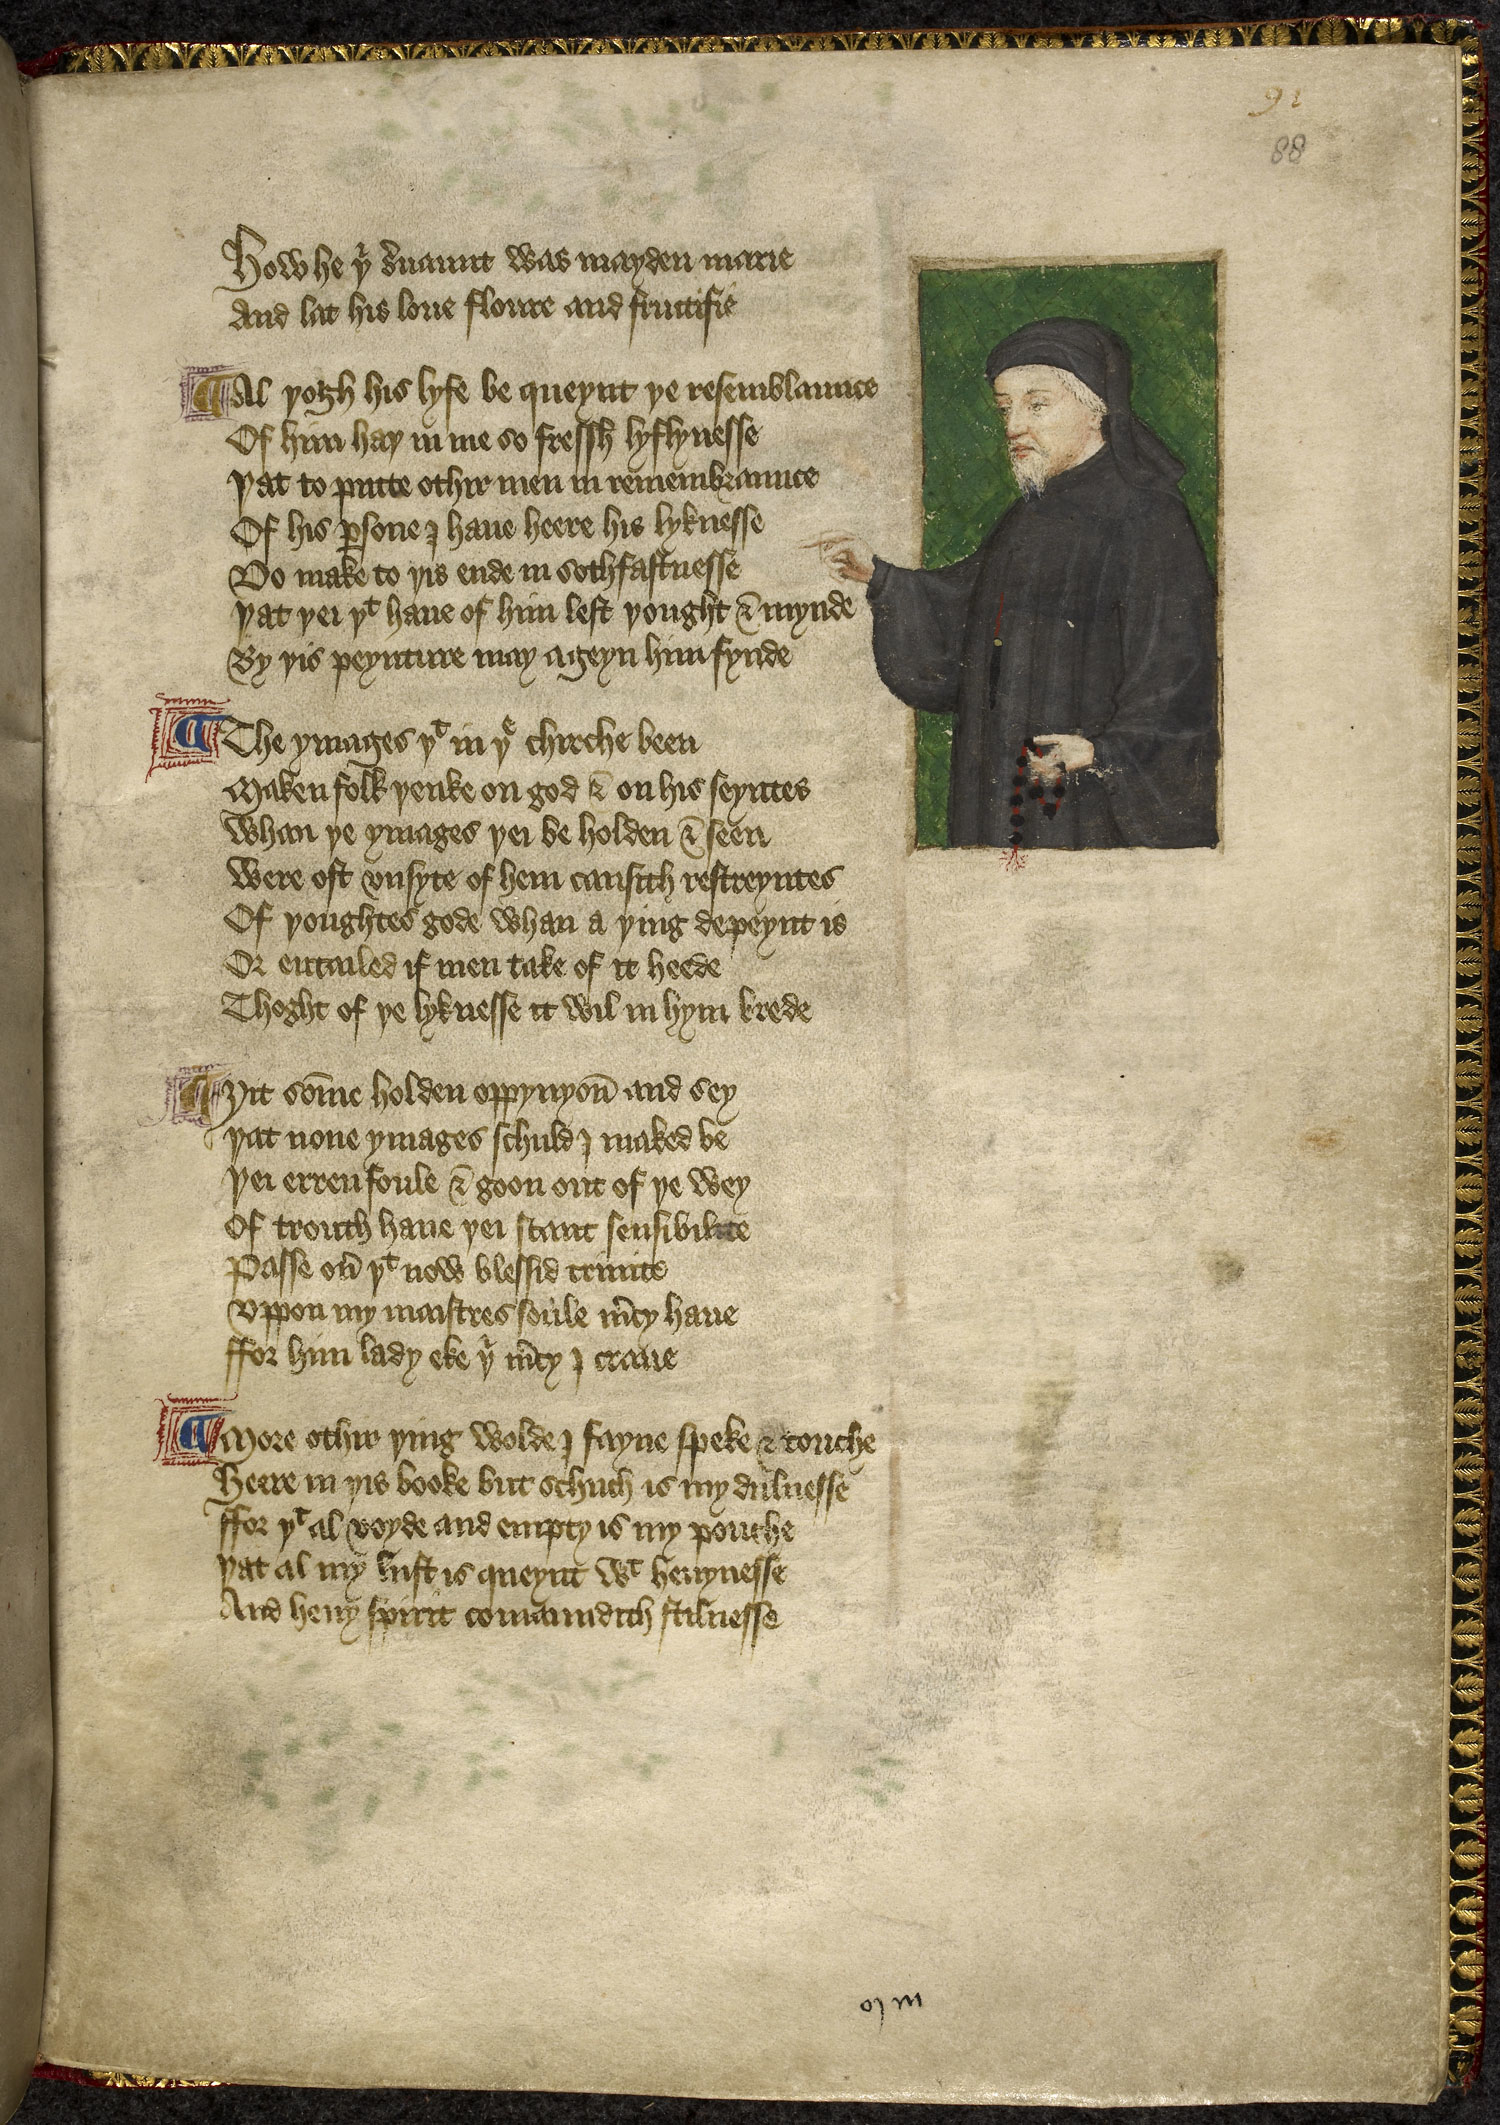 Portrait of Chaucer from a manuscript by Thomas Hoccleve, who may have met Chaucer Chaucer Hoccleve.png